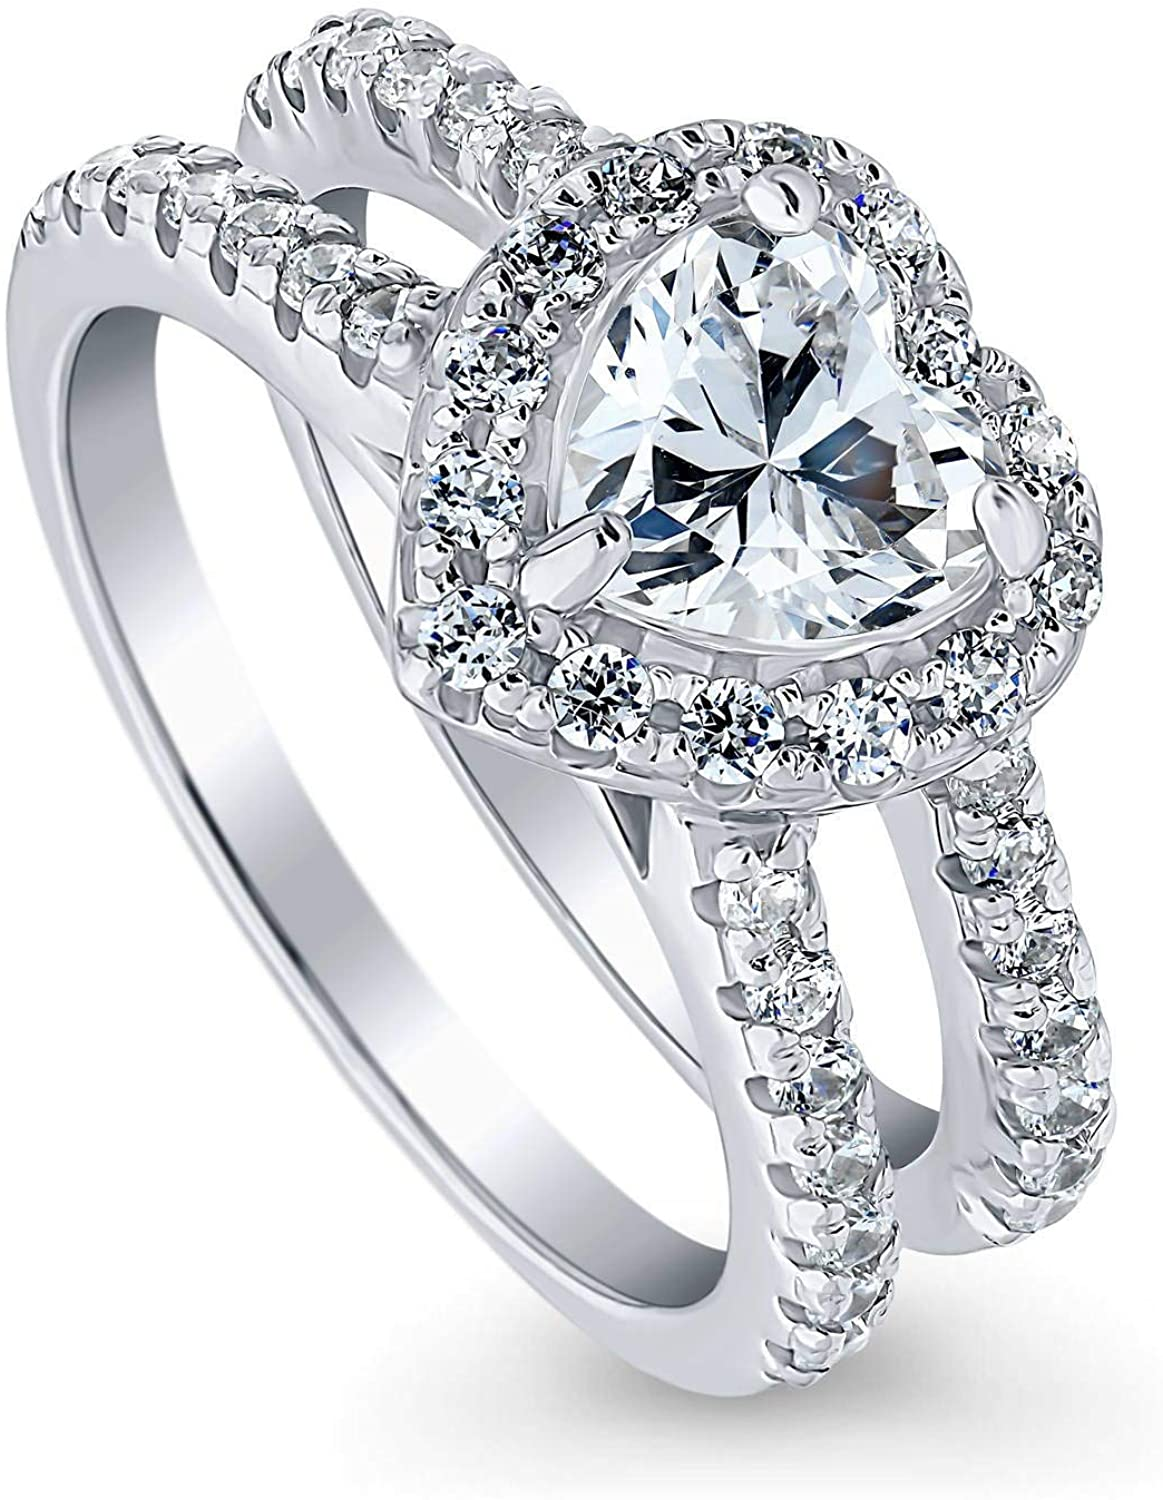 BERRICLE Rhodium Plated Sterling Silver Heart Shaped Cubic Zirconia CZ Halo Engagement Ring 1.89 CTW